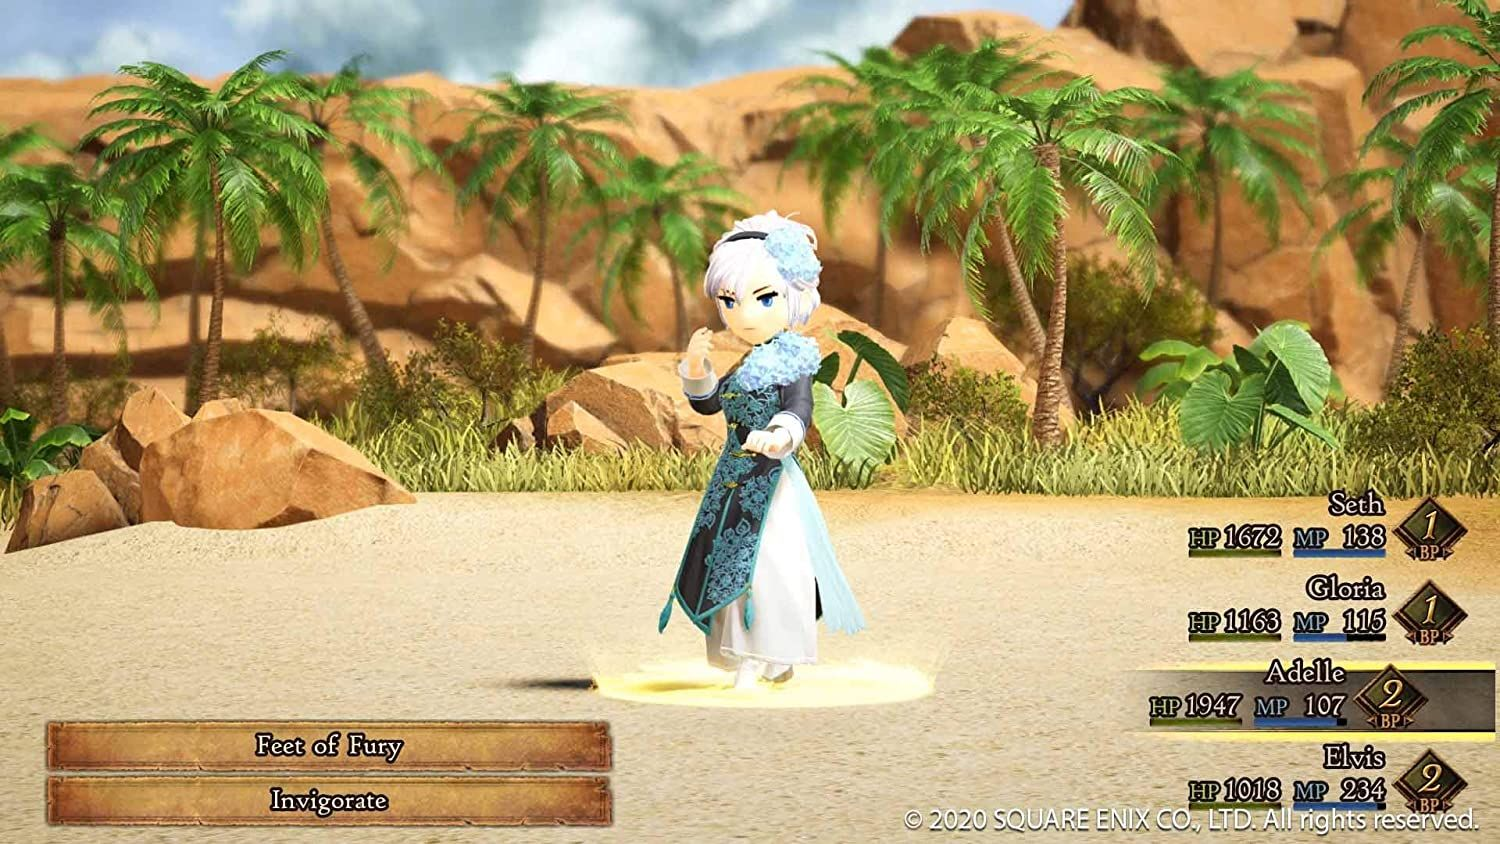 Bravely Default II first review scores published